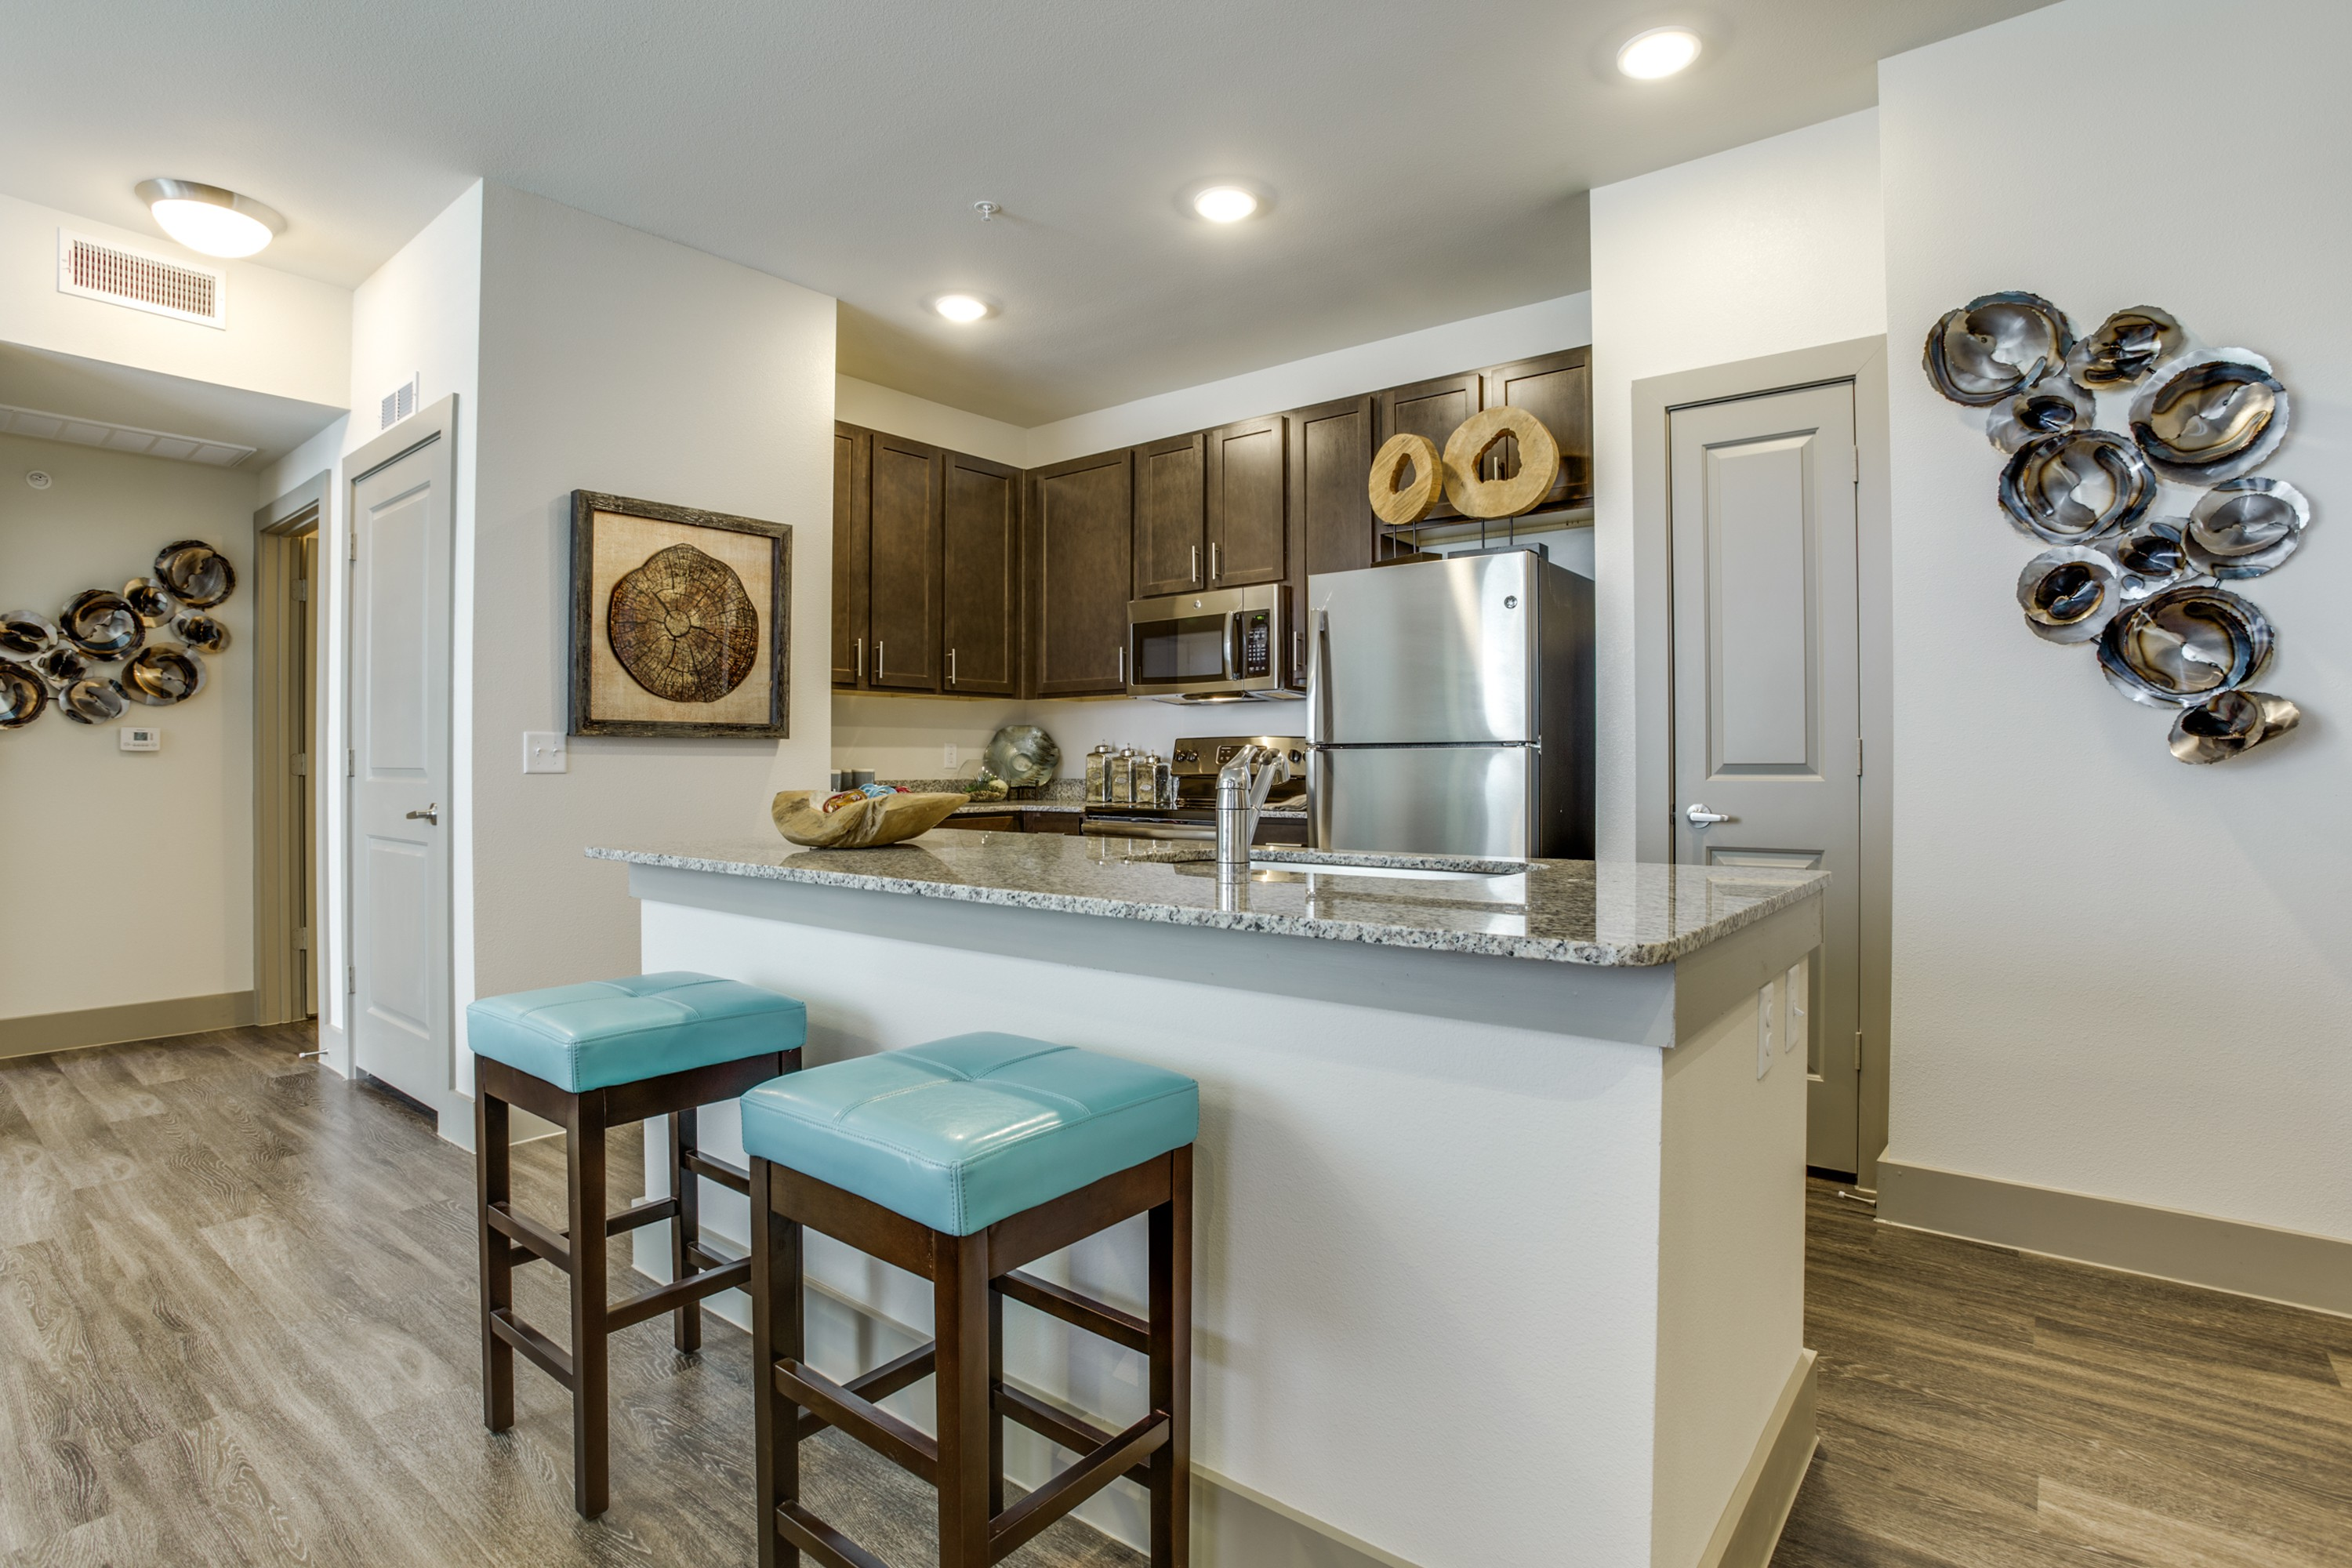 133 Apartments In Spring TX AVAIL Now